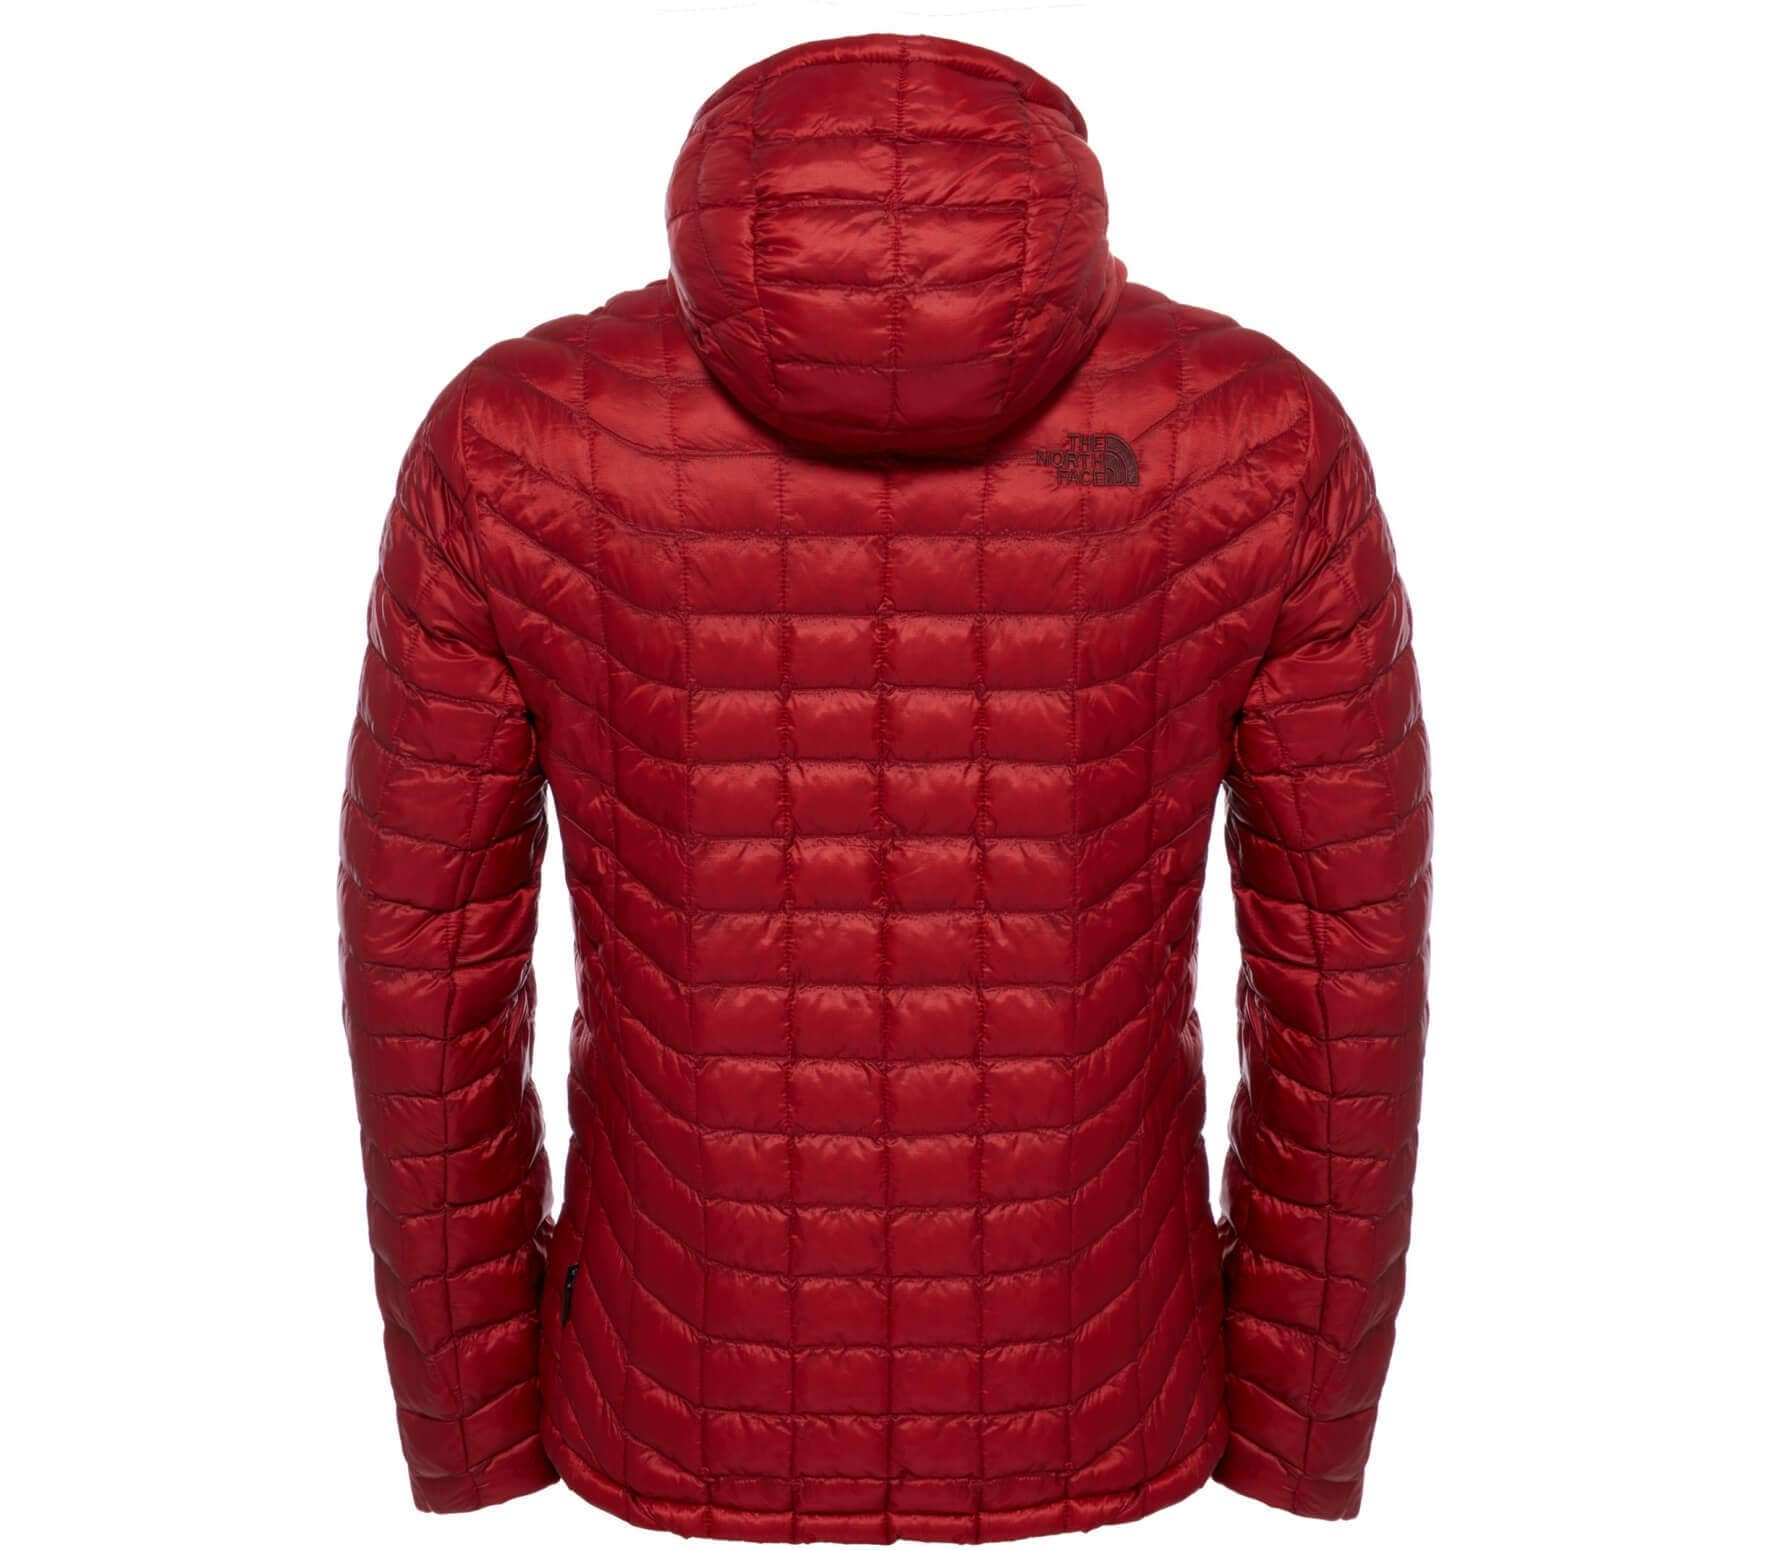 a0da1a035f6450 The north face. ThermoBall hoodie men's synthetic fibre insulating jacket  (red)